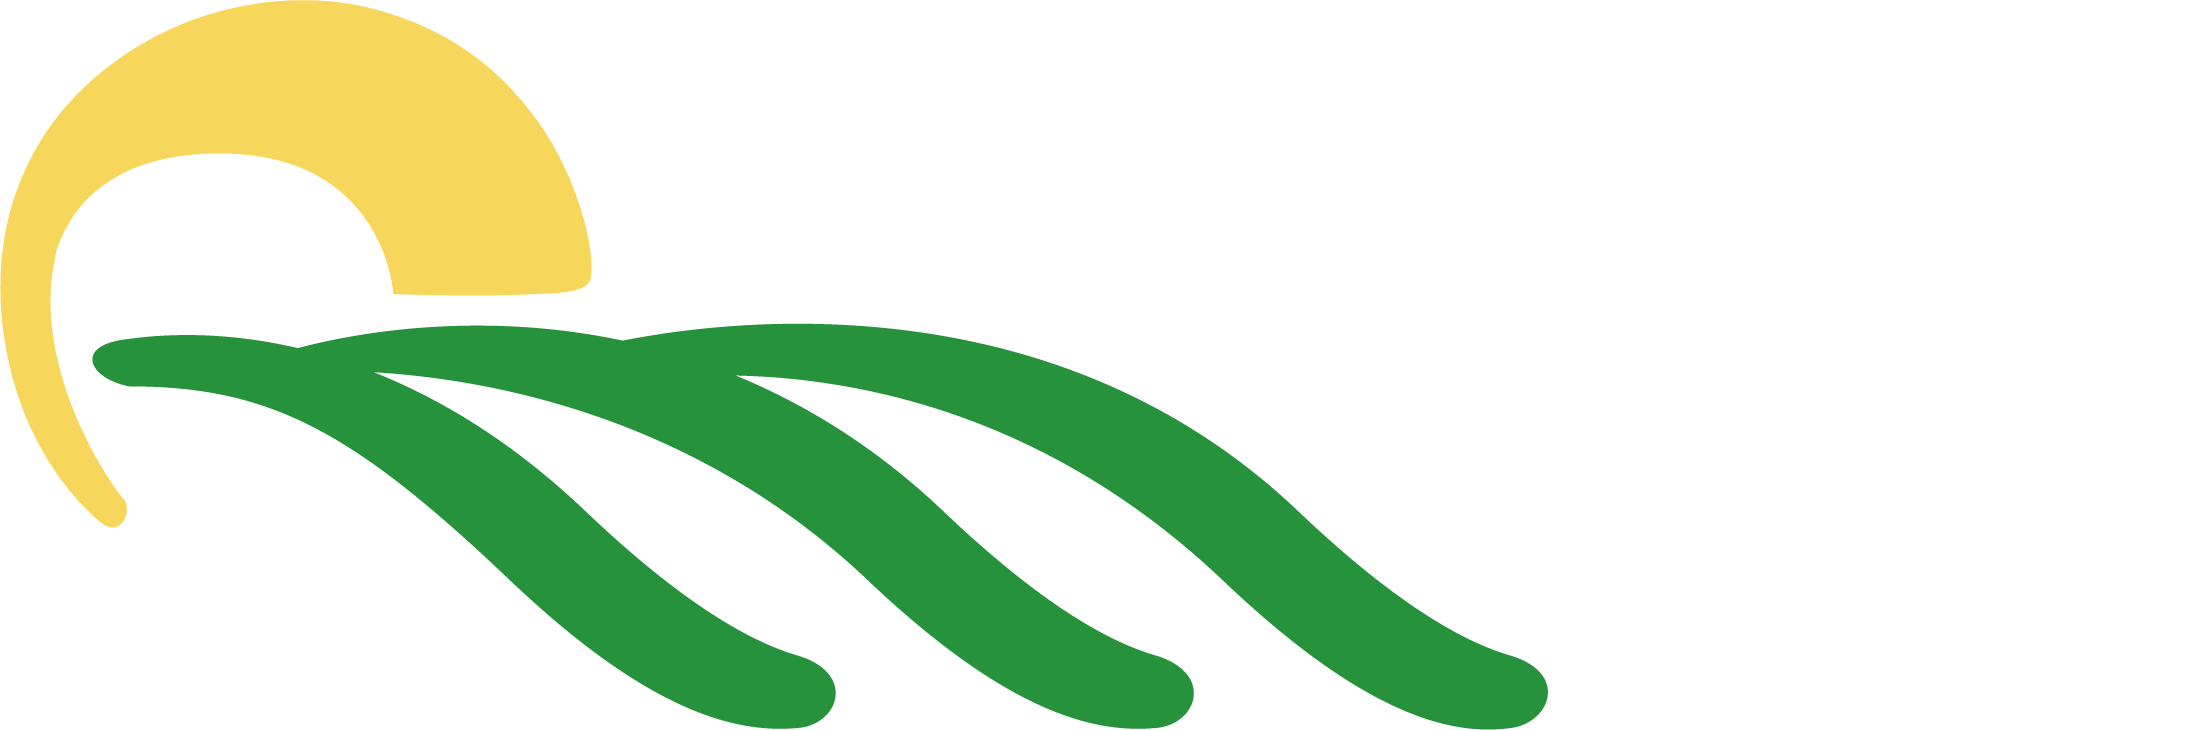 Middlesex County PL